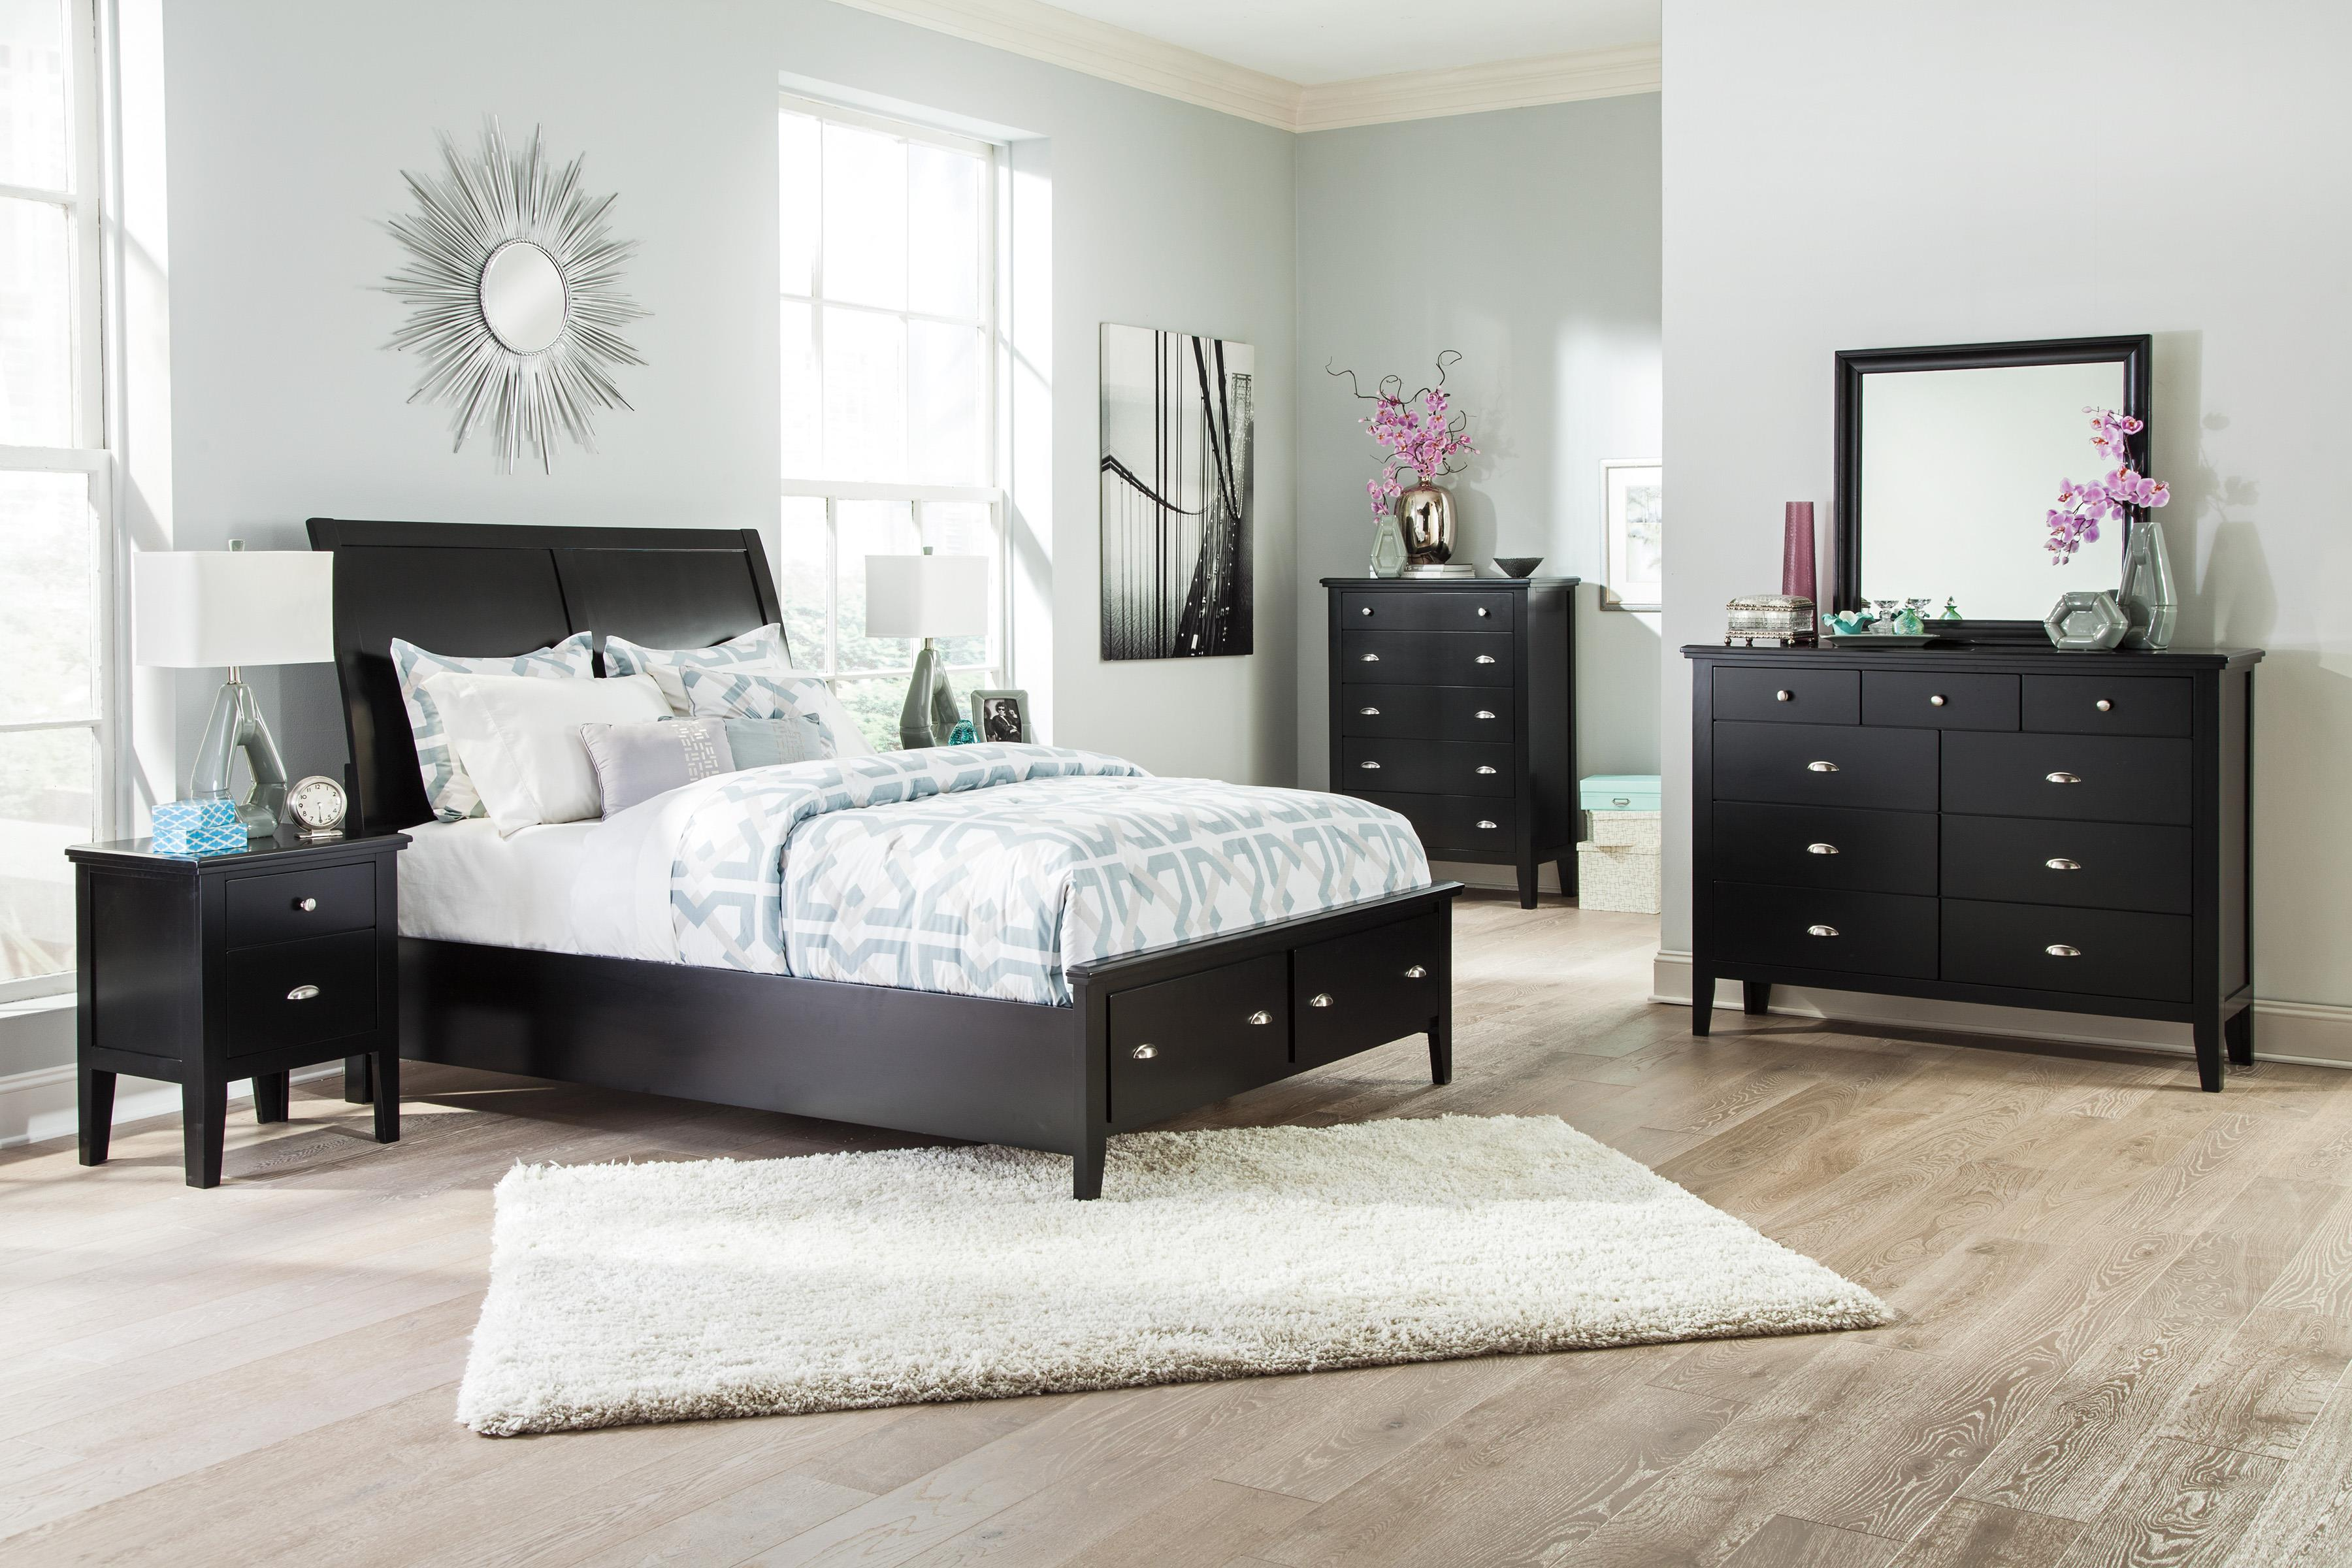 Signature Design by Ashley Braflin King Bedroom Group - Item Number: B591 K Bedroom Group 3